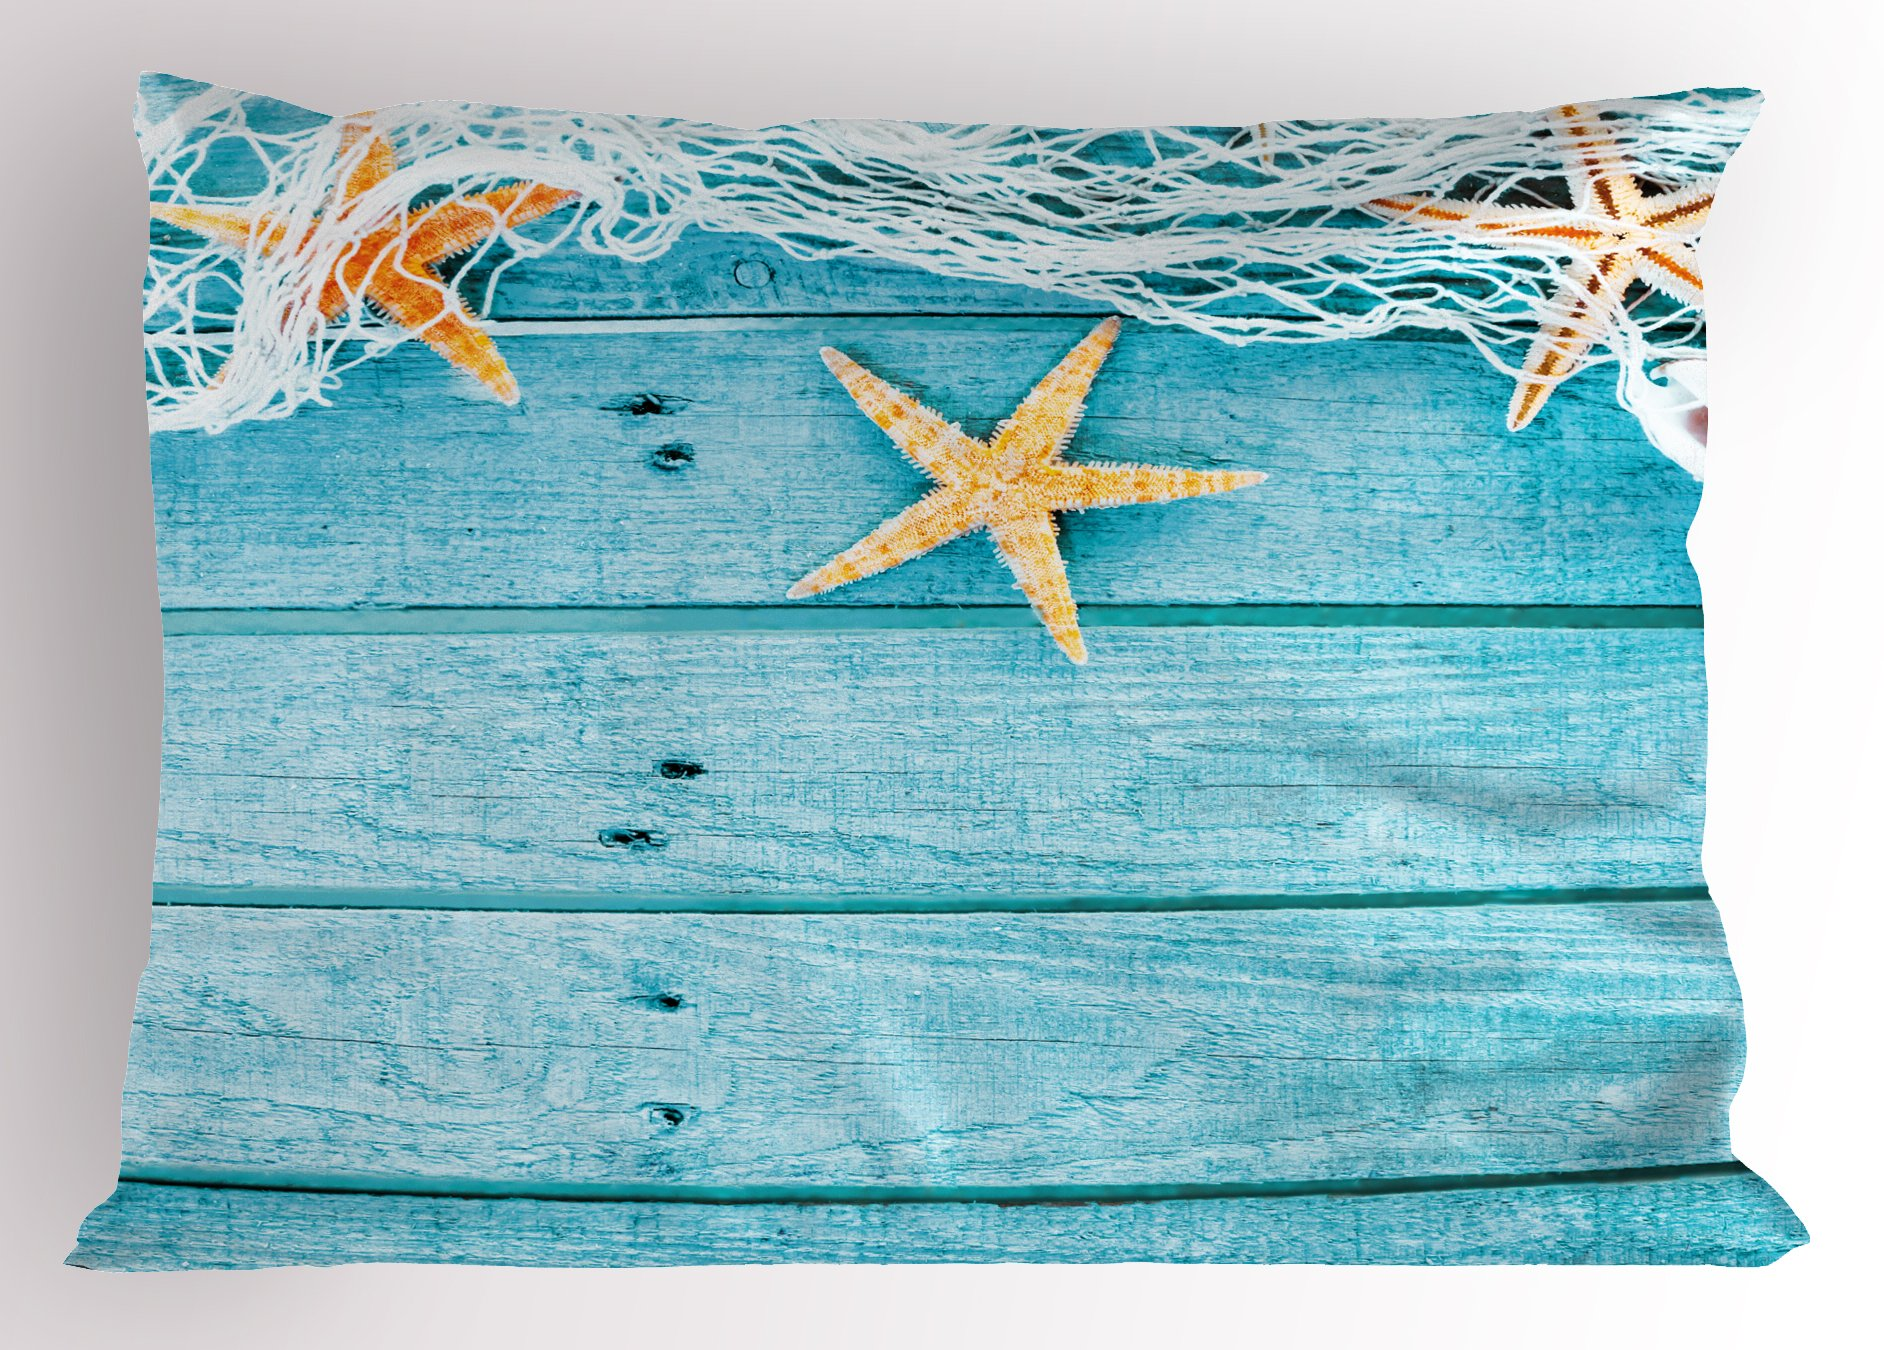 Ambesonne Starfish Decor Pillow Sham, Rustic Wood Boards Fishing Net and Ocean Animals Nautical Print, Decorative Standard Queen Size Printed Pillowcase, 30 X 20 inches, Turquoise White Orange by Ambesonne (Image #1)